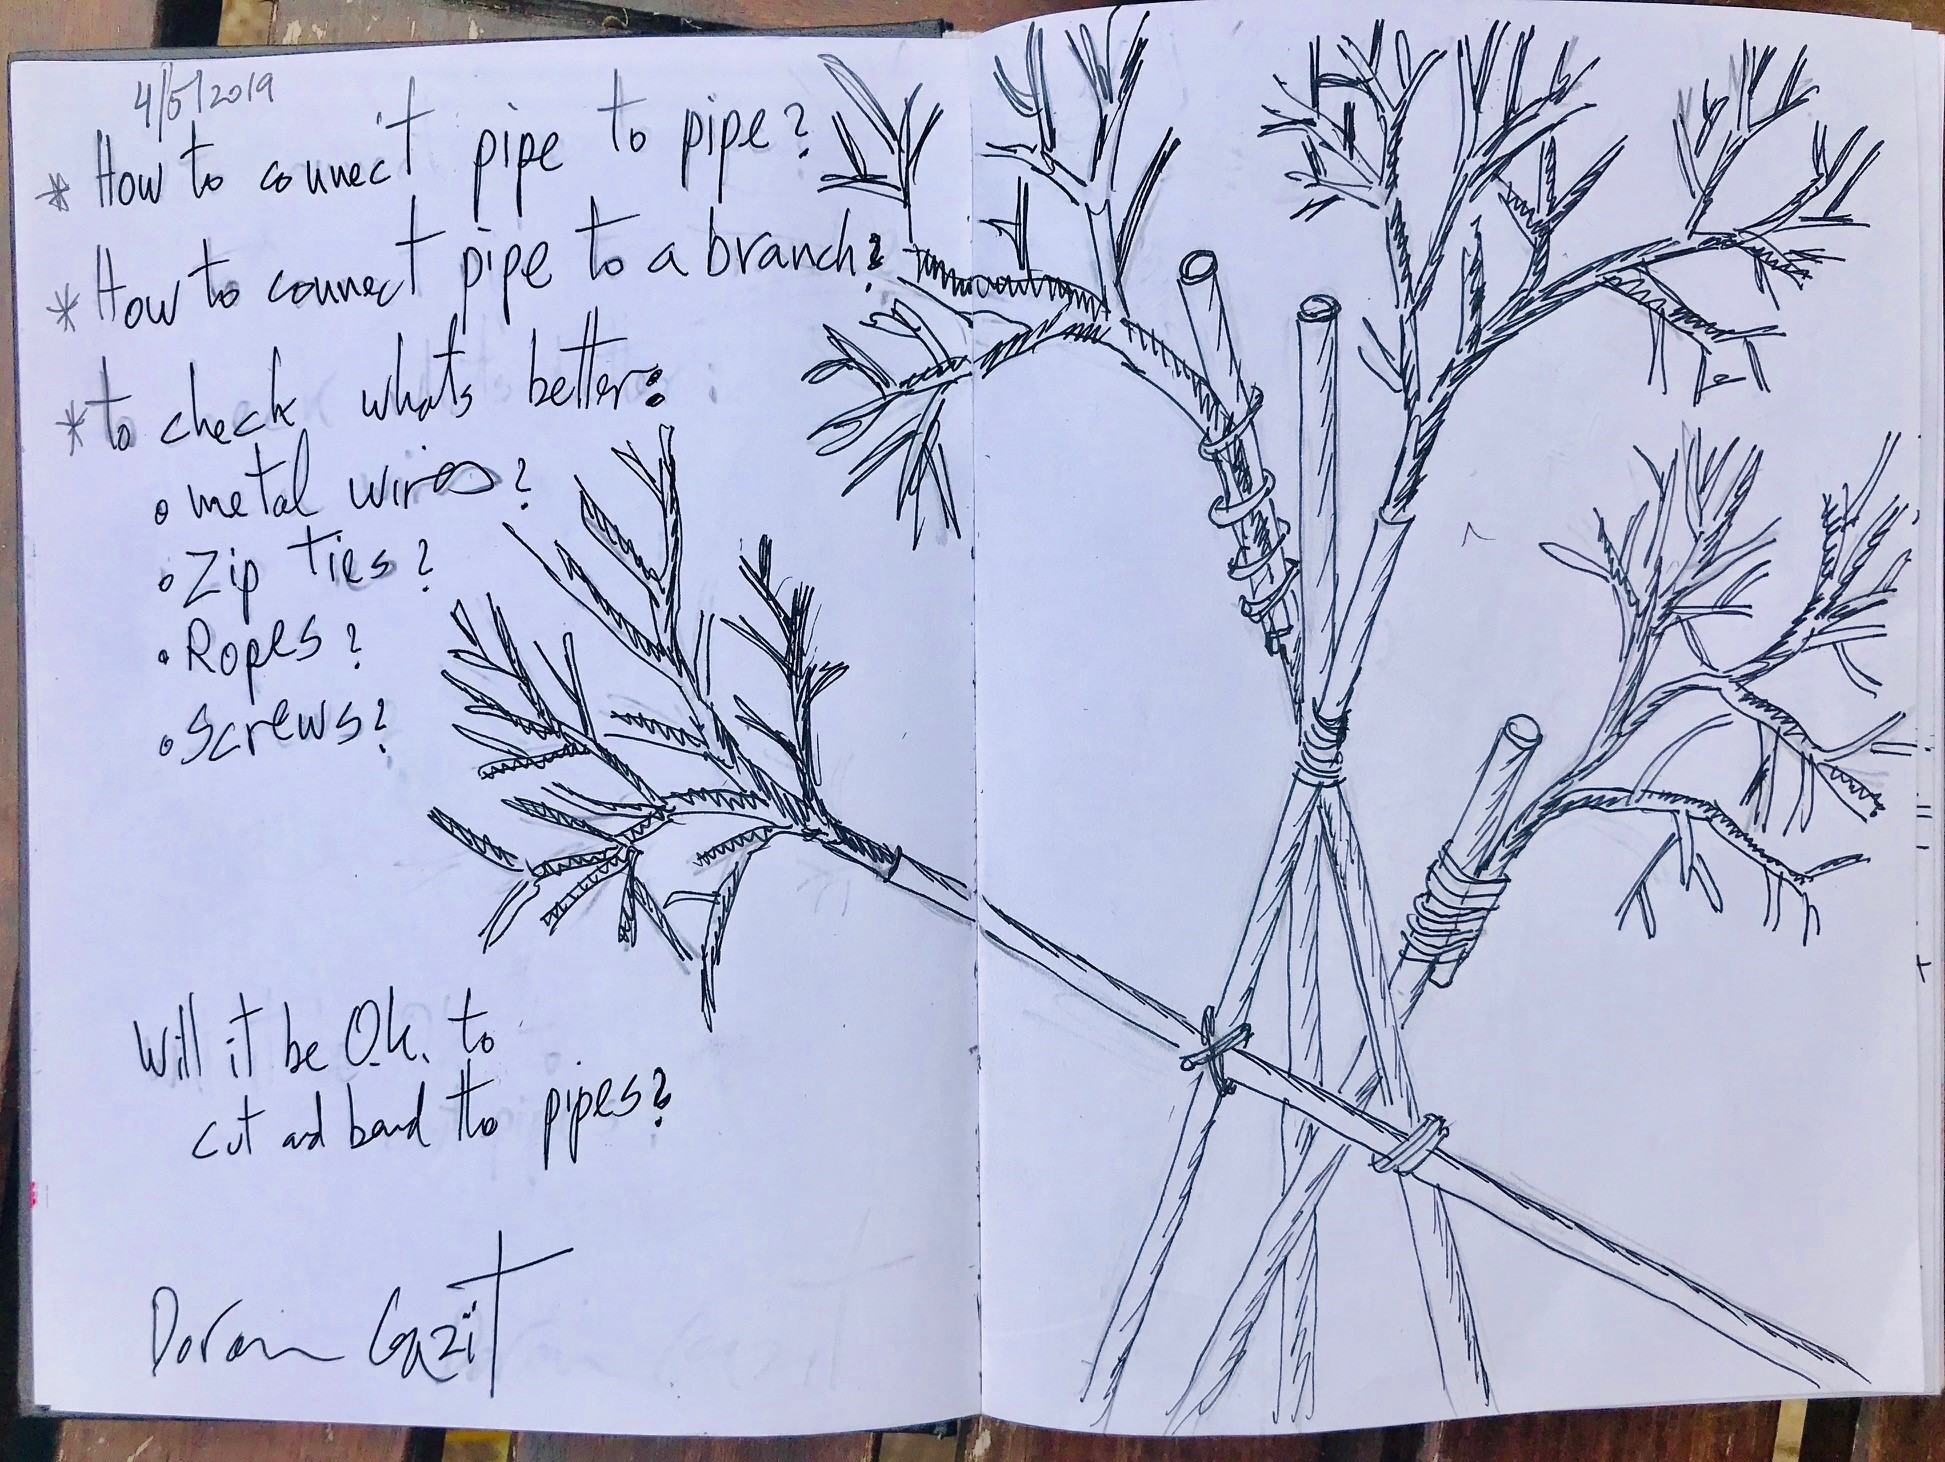 Sketch - Villa - connecting branches to